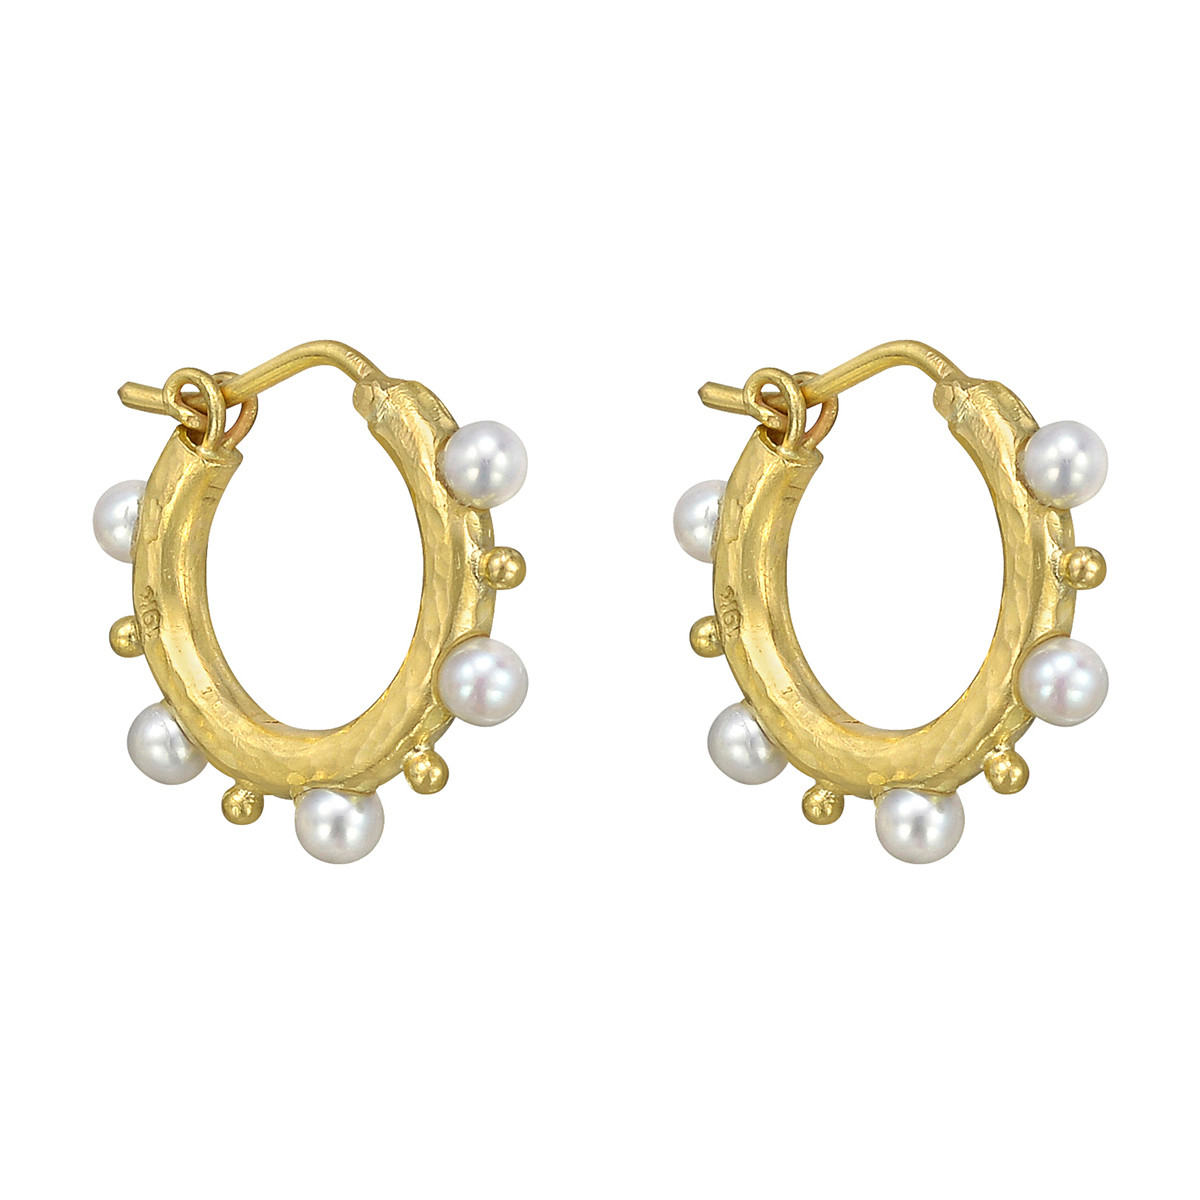 19k Yellow Gold & Pearl Hoop Earrings